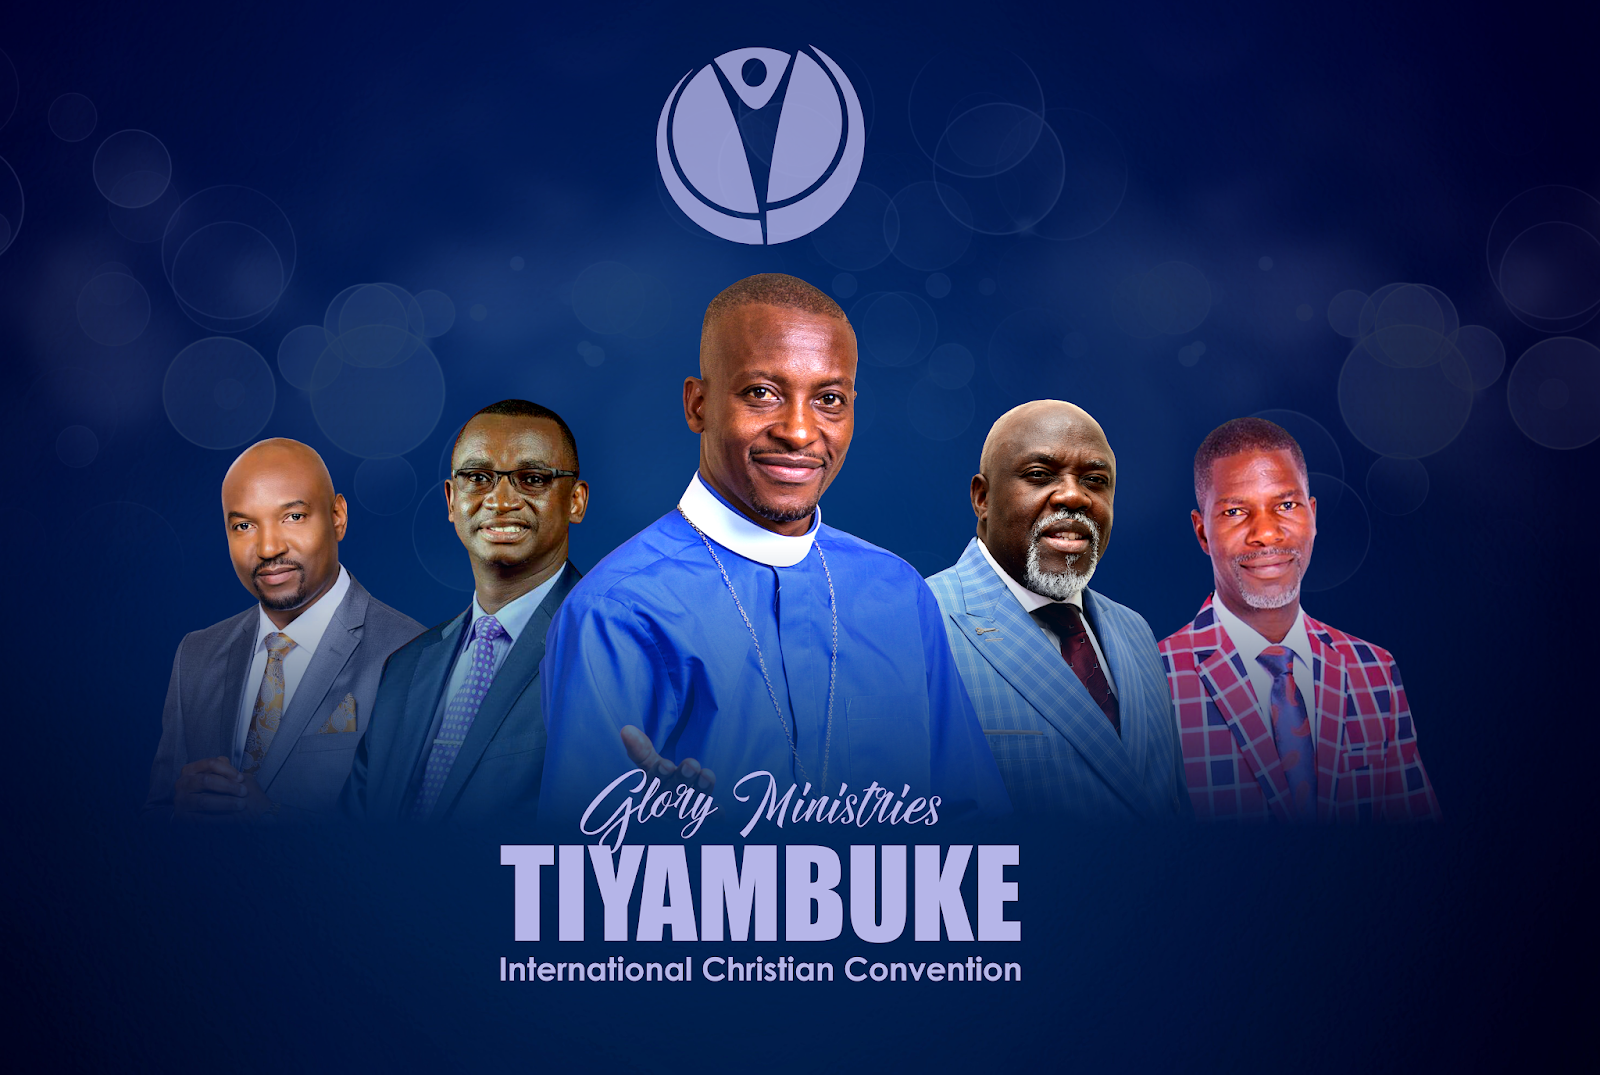 Tiyambuke International Christian Convention (TICC) is a convention of Christian saints from the cooperate Body of Christ hosted by Glory Ministries a ministry led by Apostle Pride and Anna Sibiya.